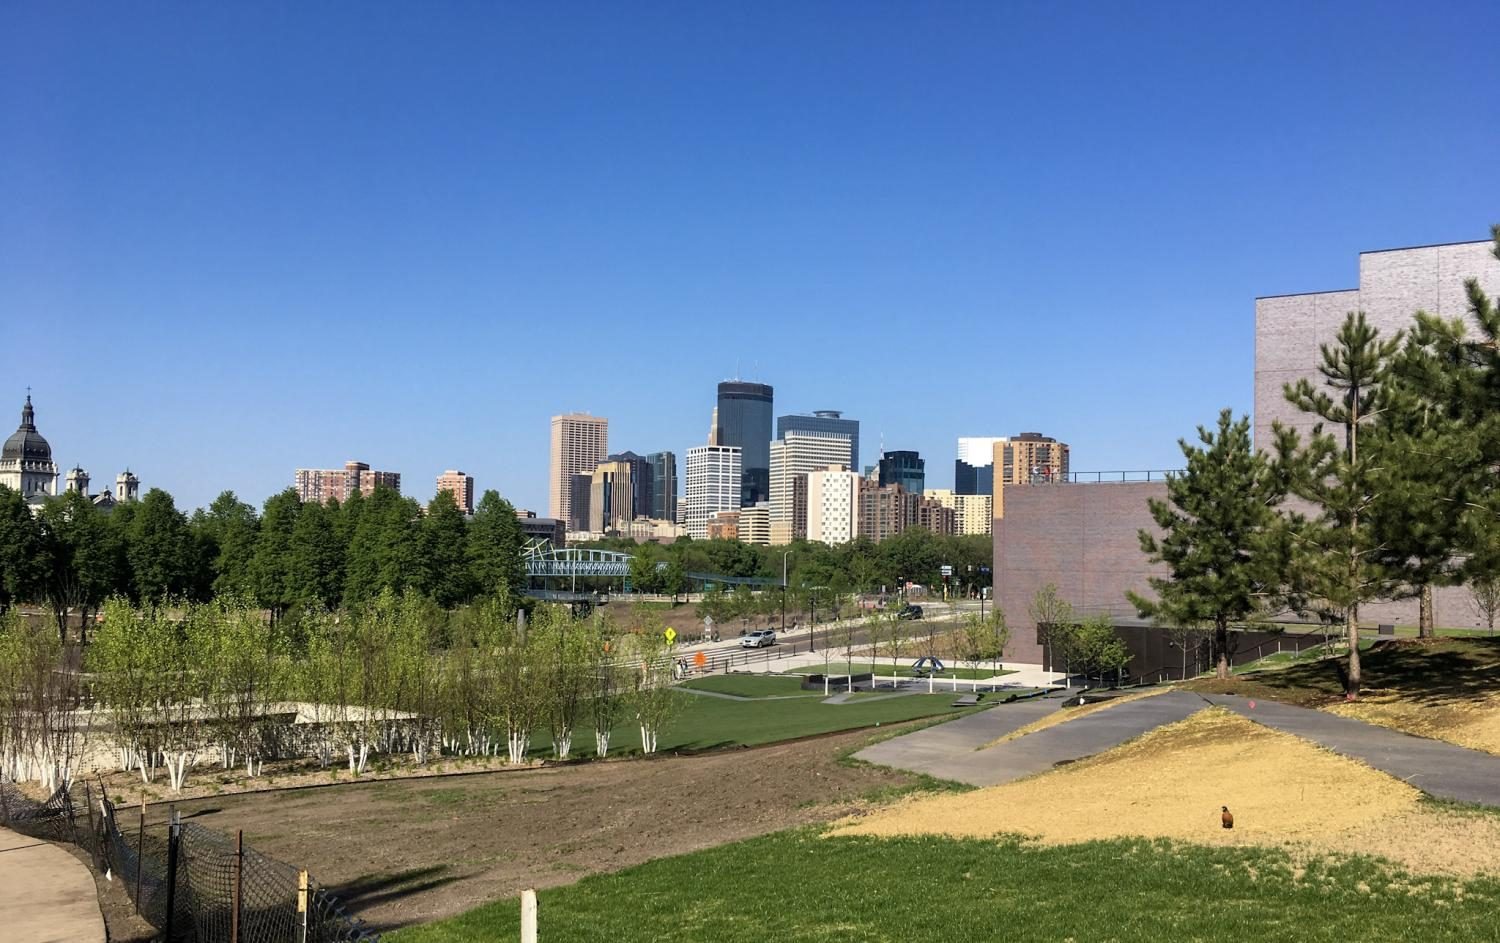 The Minneapolis Sculpture Garden will reopen in June. It is free for the public, and is a perfect place for someone who wants to be outside and appreciate art.